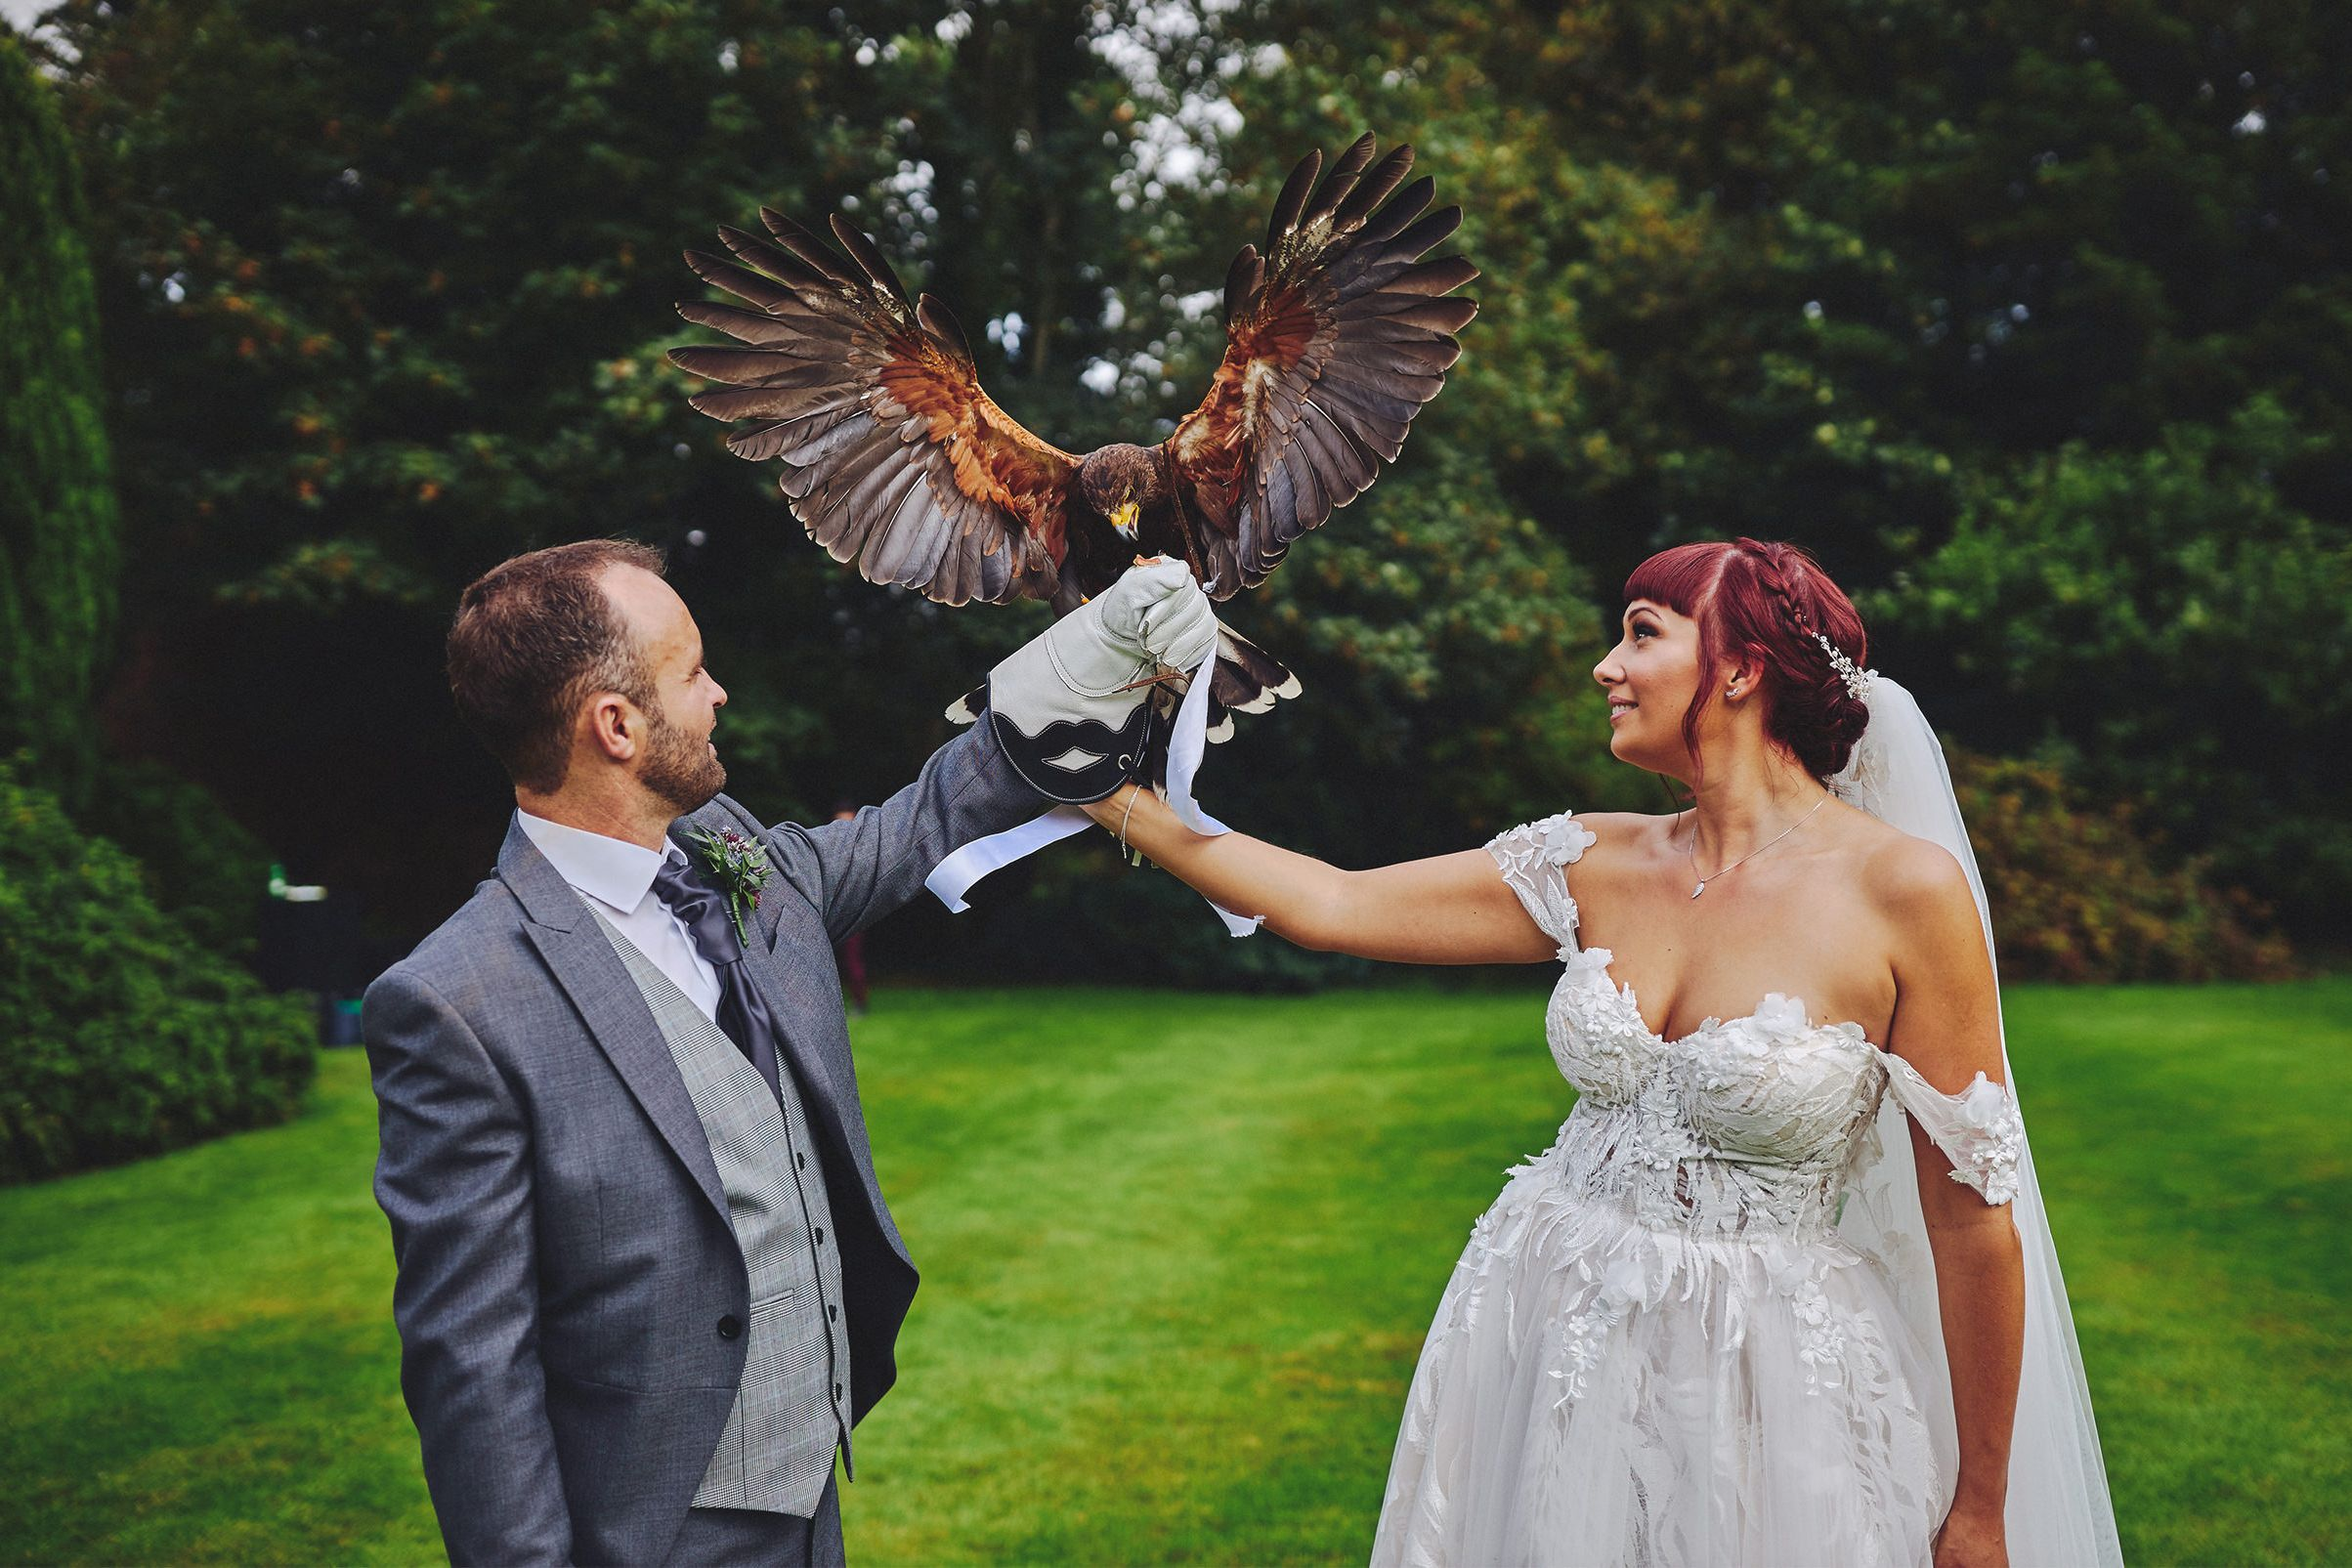 Waterford Castle Outdoor Wedding Ceremony